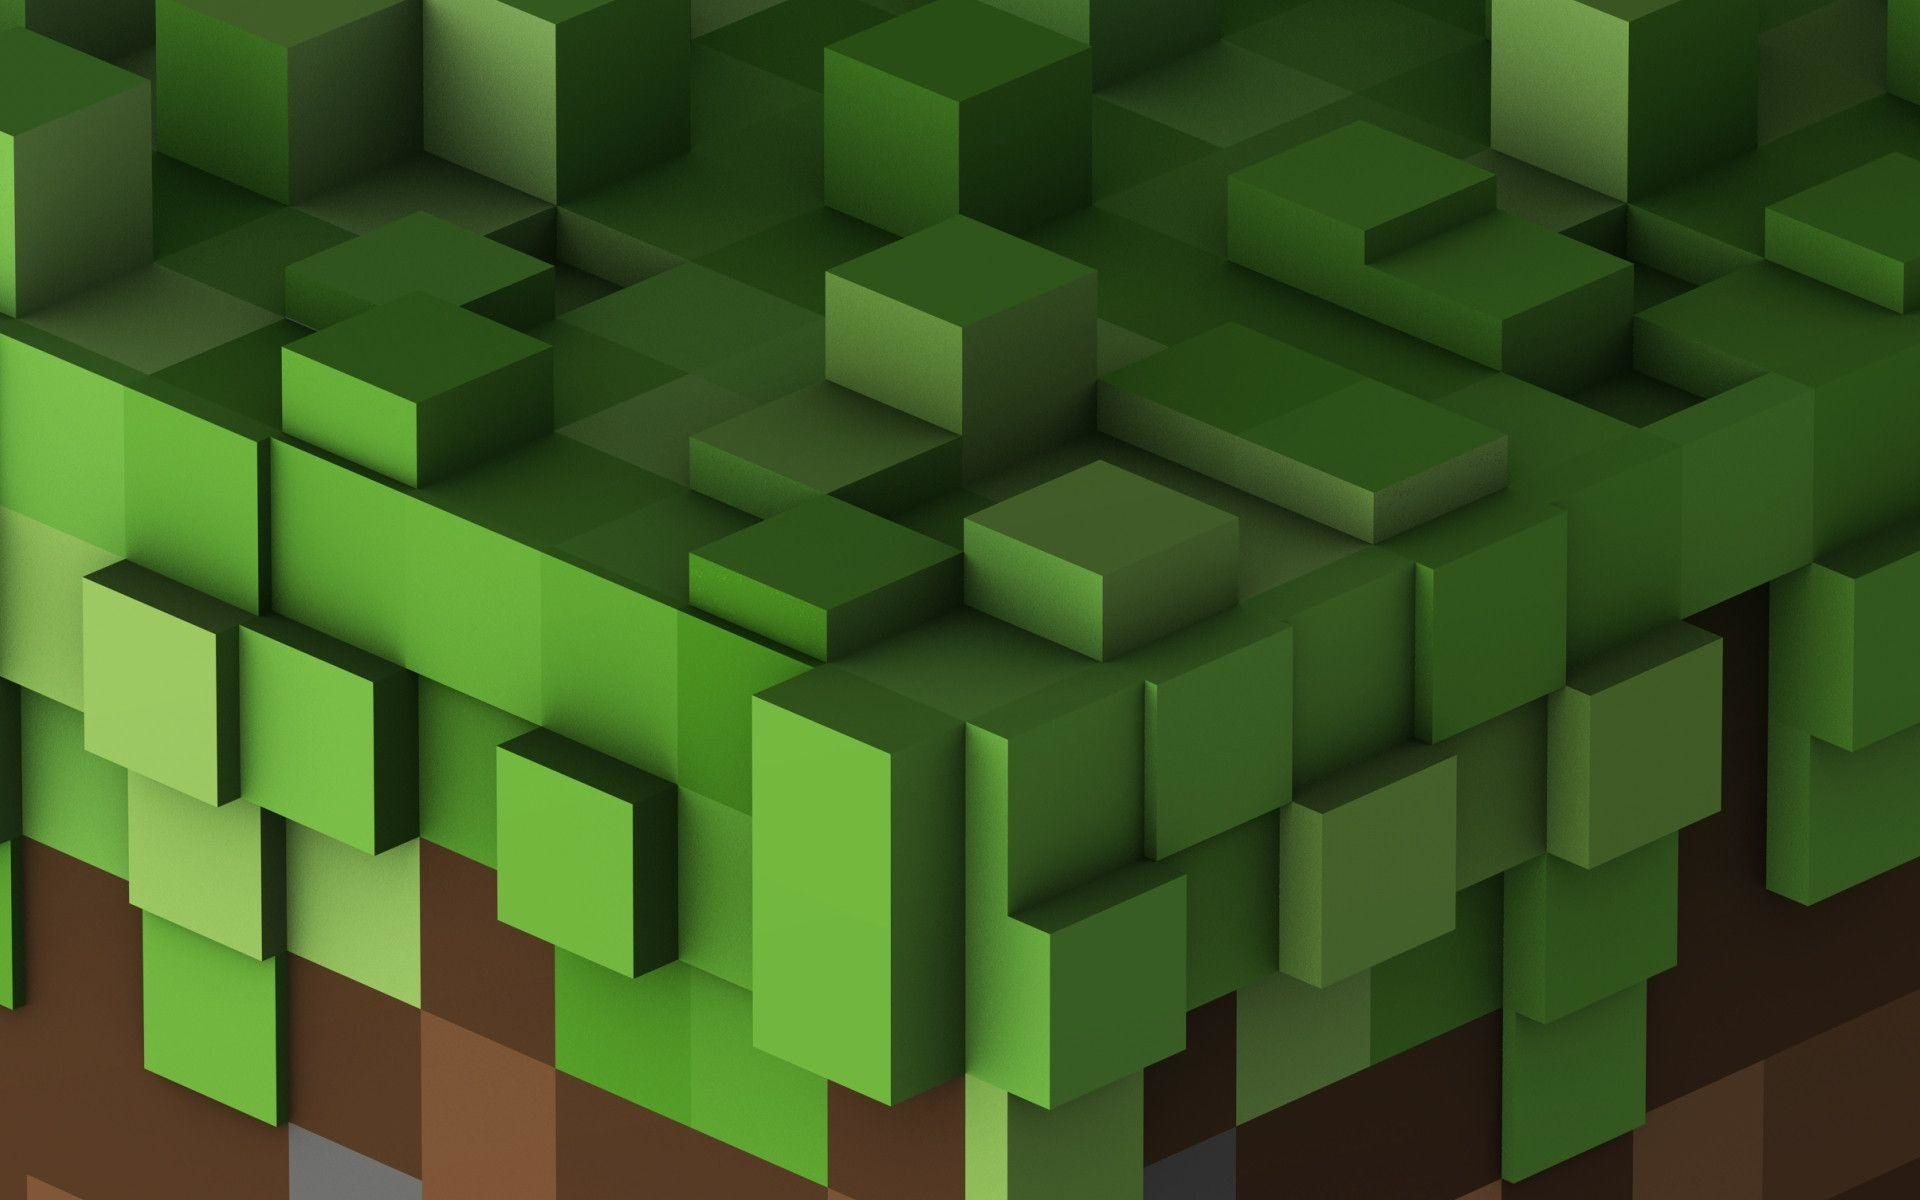 Wallpapers of minecraft minecraft soccer game voltagebd Image collections